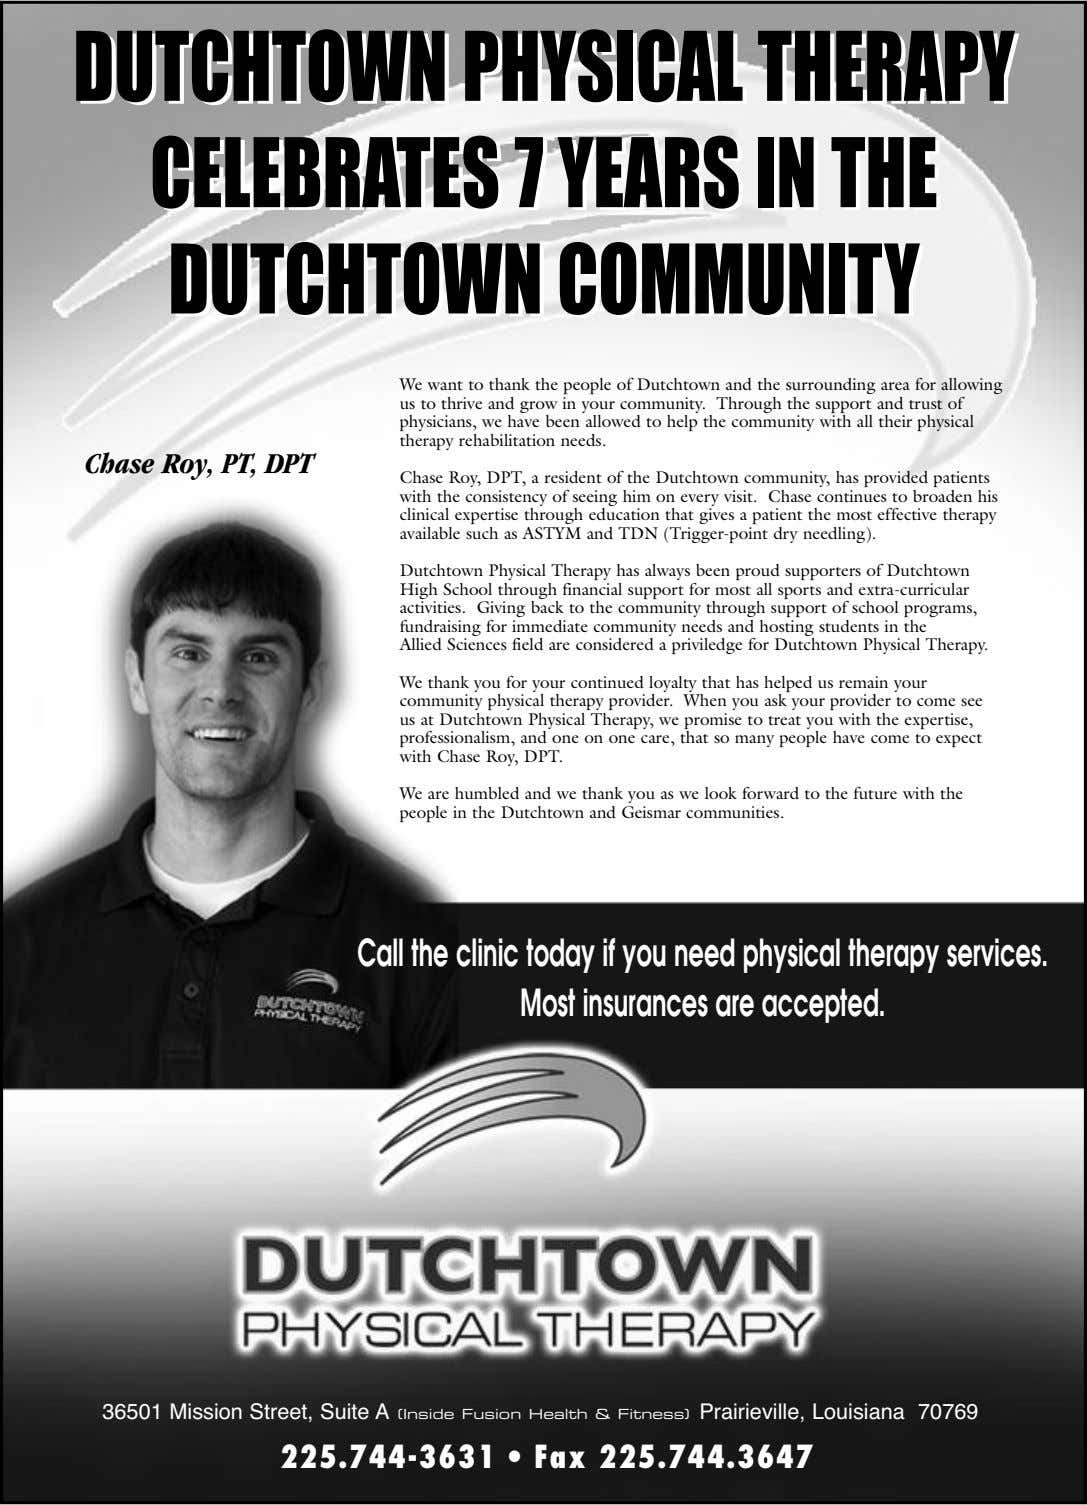 DUTCHTOWN DUTCHTOWN PHYSICAL PHYSICAL THERAPY THERAPY CELEBRATES CELEBRATES 7 7 YEARS YEARS IN IN THE